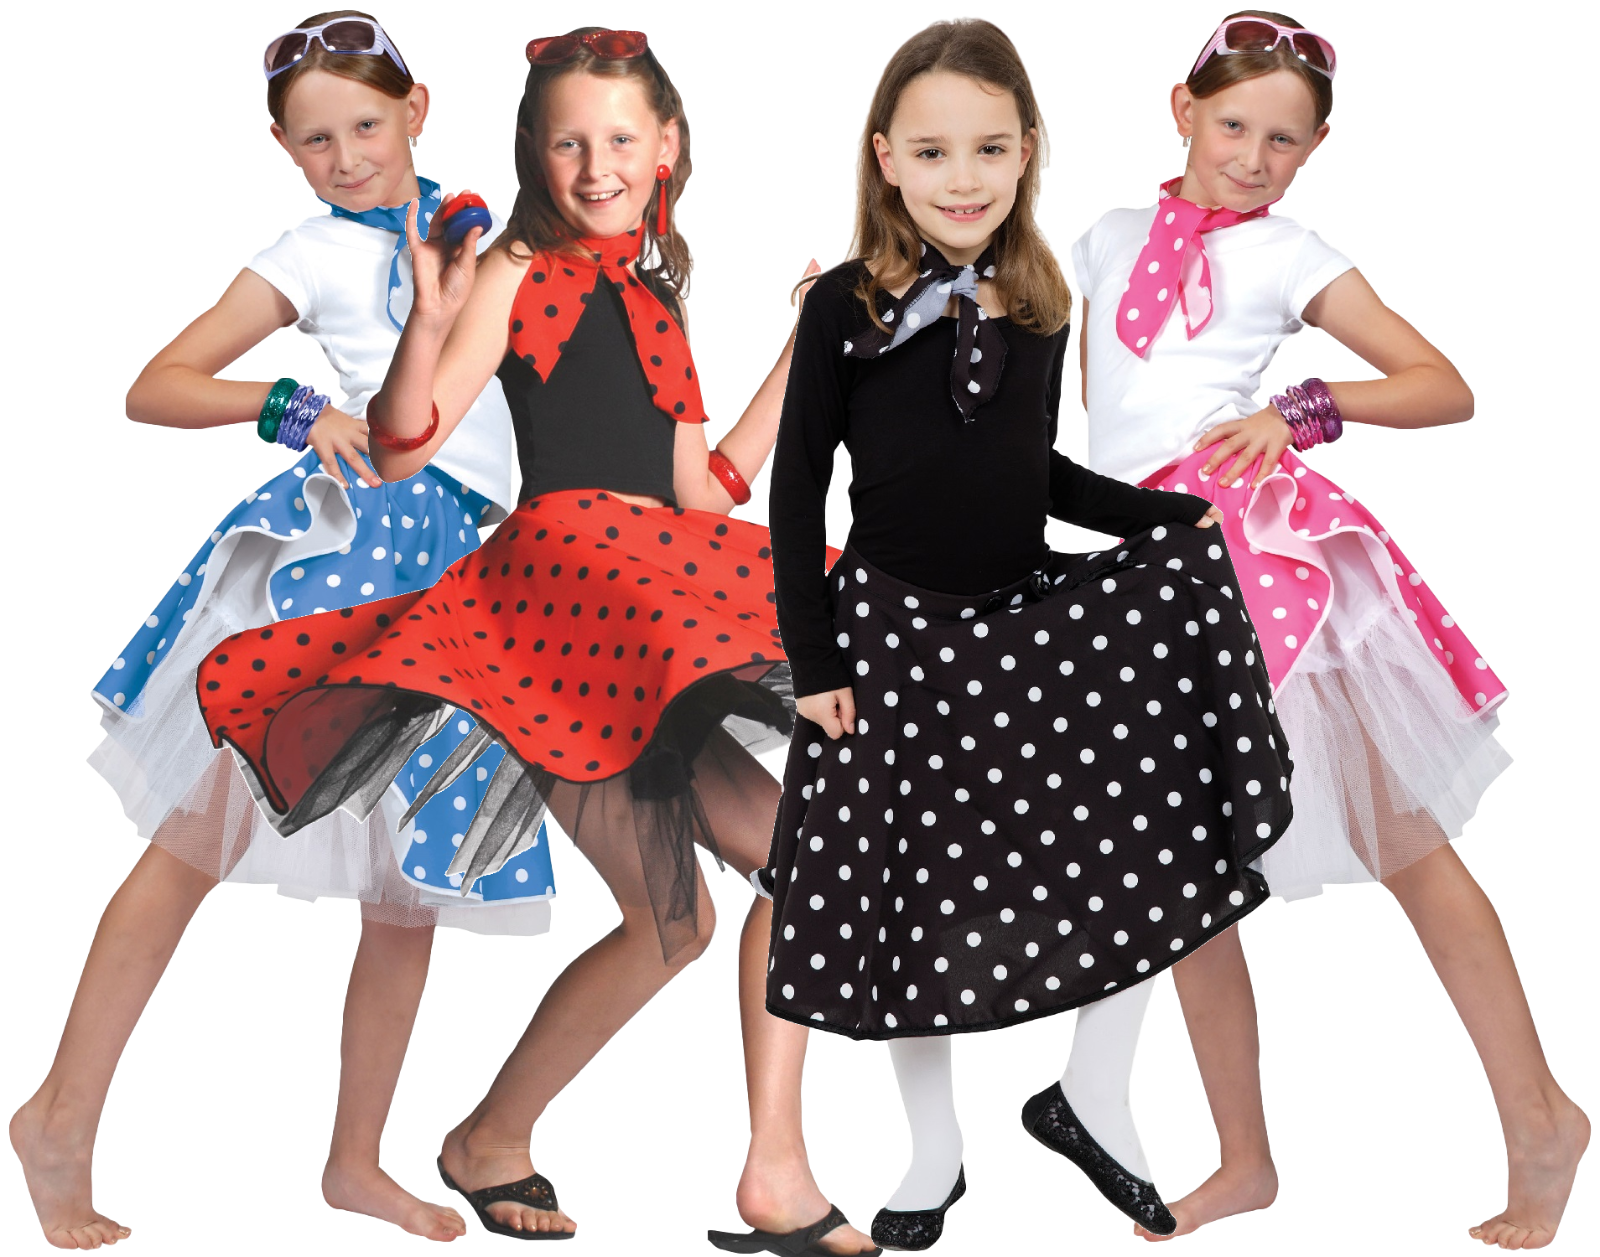 d34d0bd68e Details about Girls 50's Pink Black Red Blue Rock and Roll Skirt & Scarf  Fancy Dress Costume